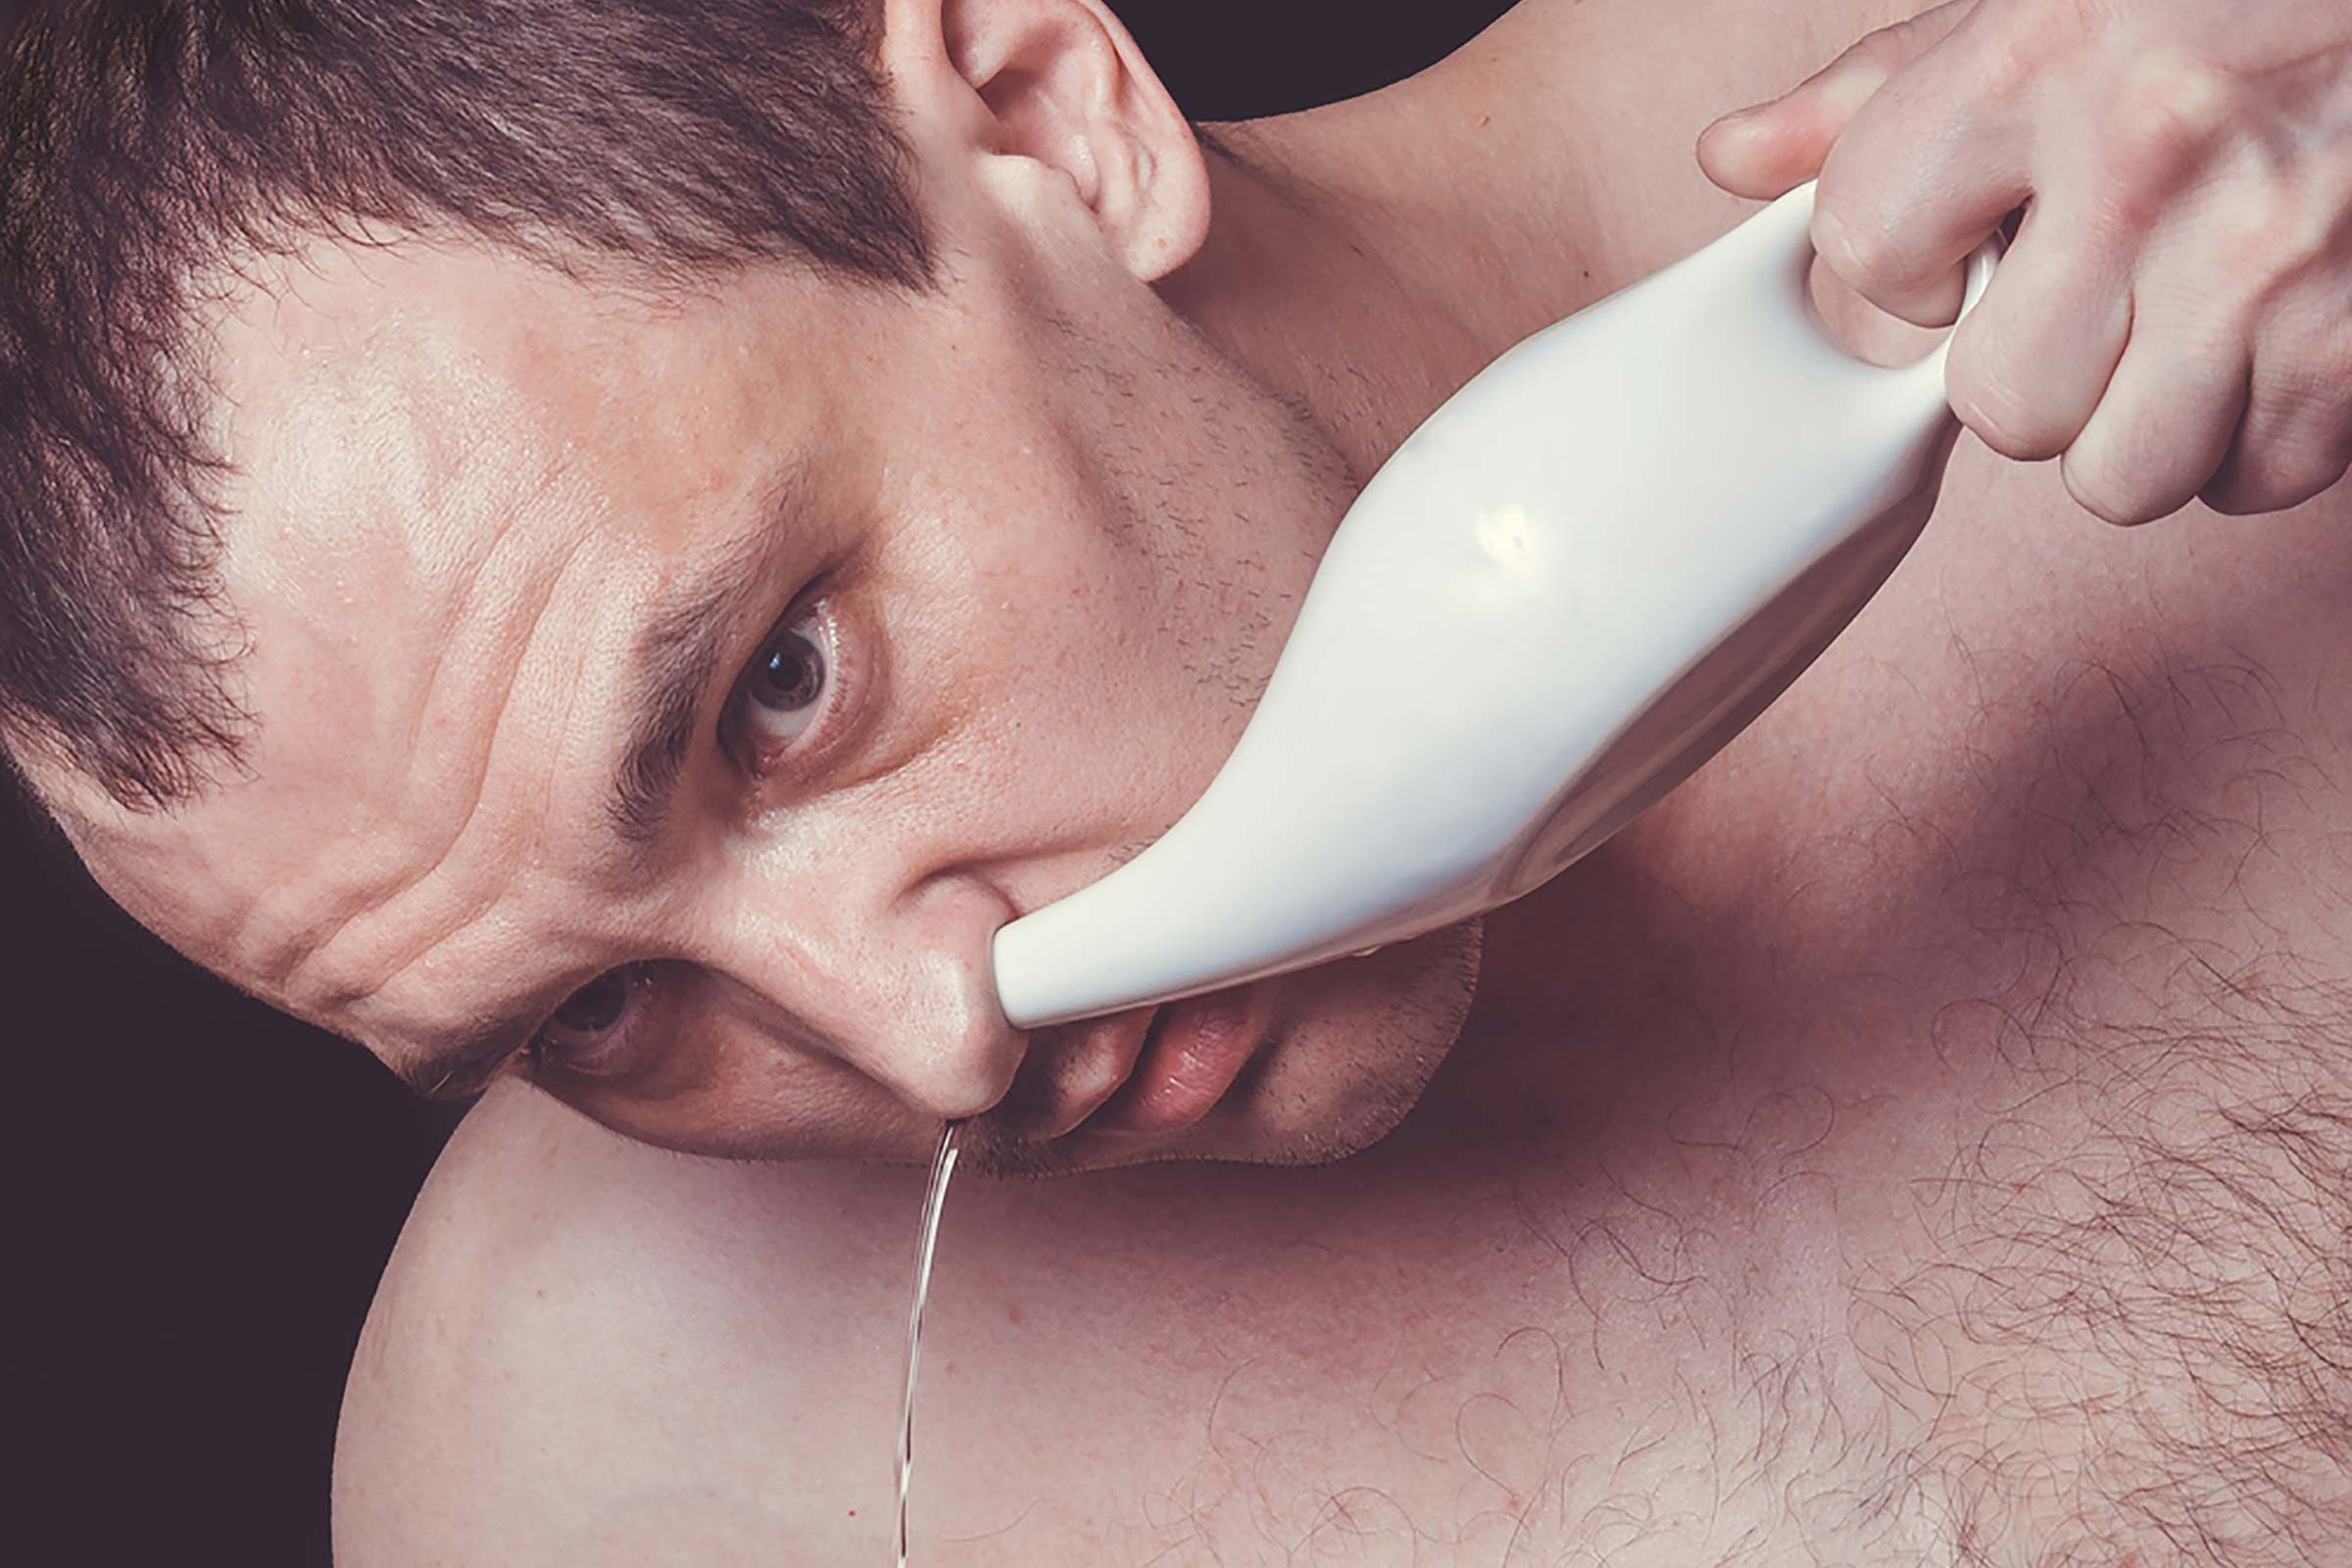 Man using a neti pot in his nostril.